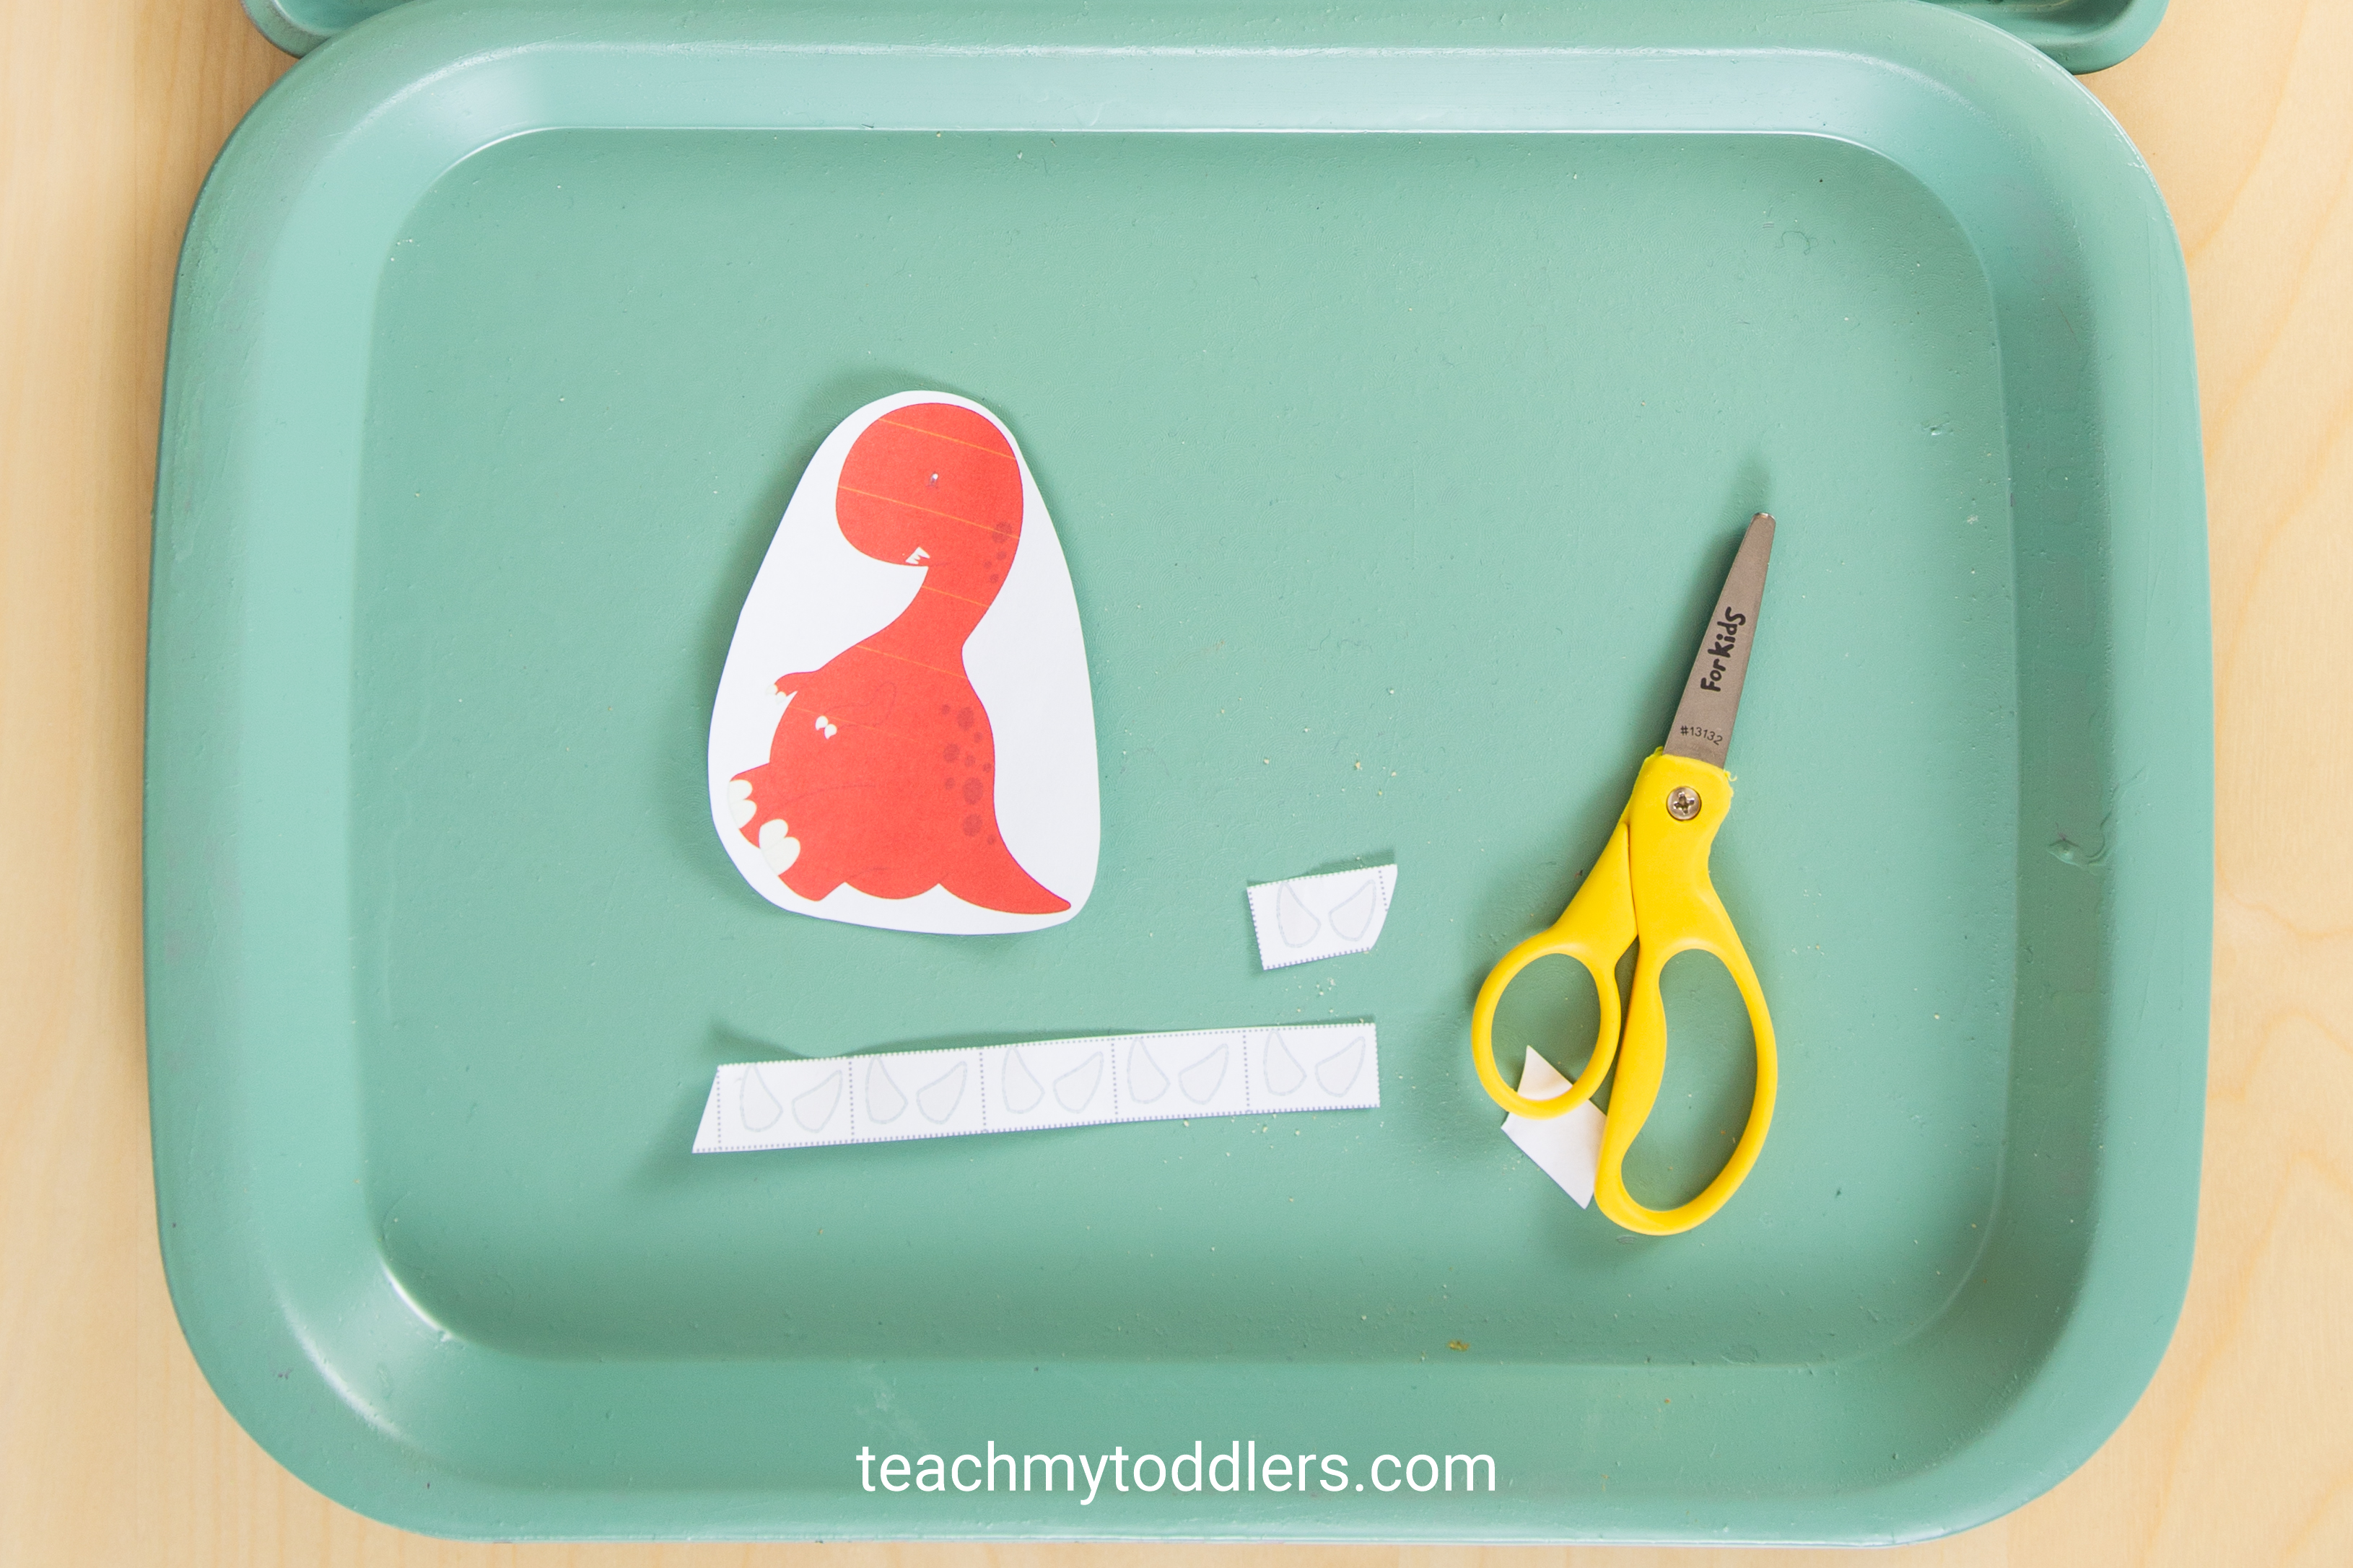 These toddler trays are great for teaching toddler the letter e is for extinct